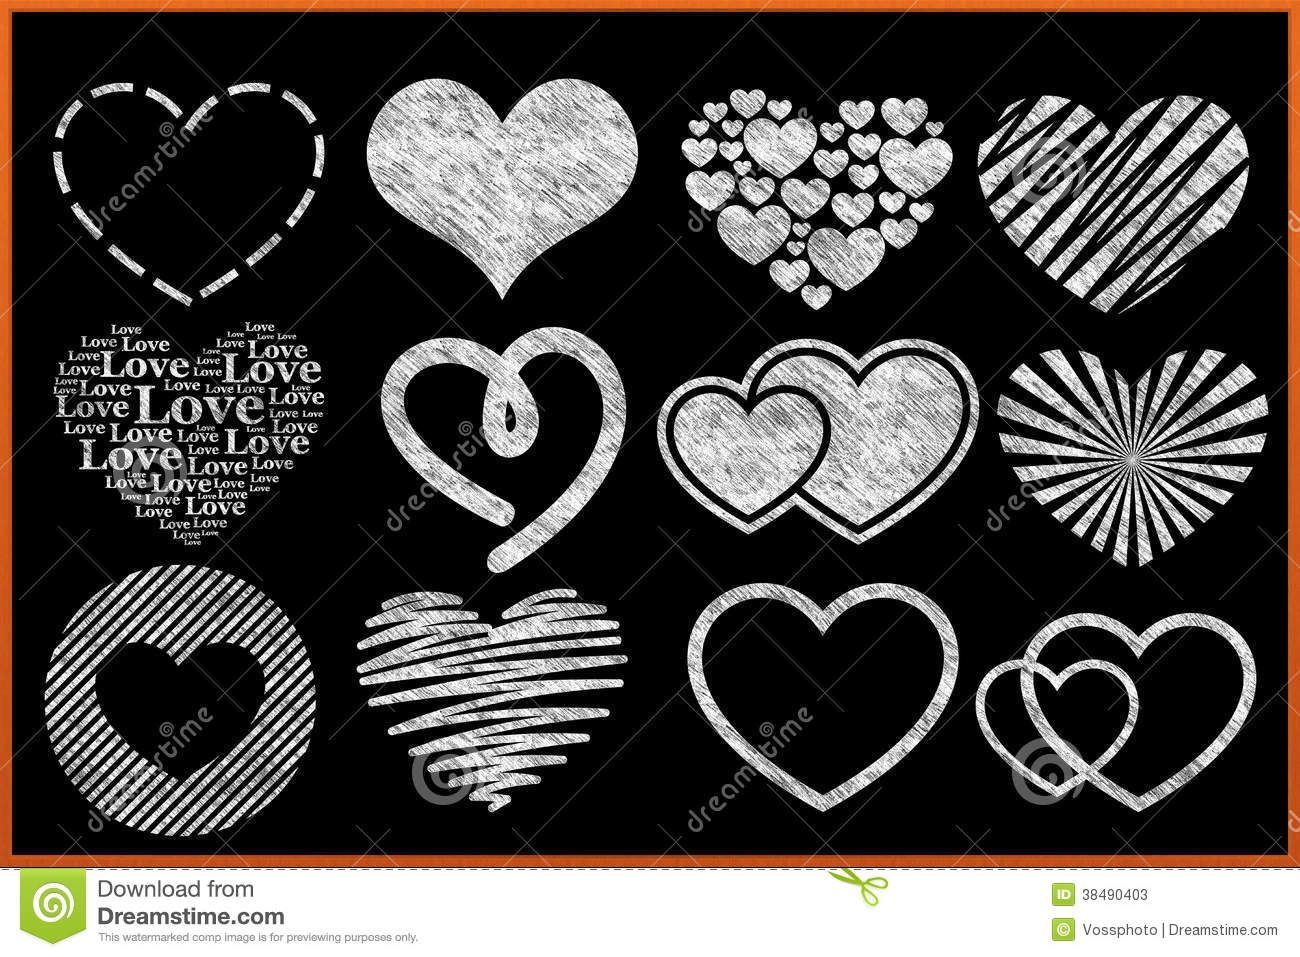 map drawing with Stock Photos Chalkboard Heart Collection Designs Image38490403 on View likewise 15688616549 furthermore Skirting and Architrave as well Theamerikansteppes likewise 7583724028.